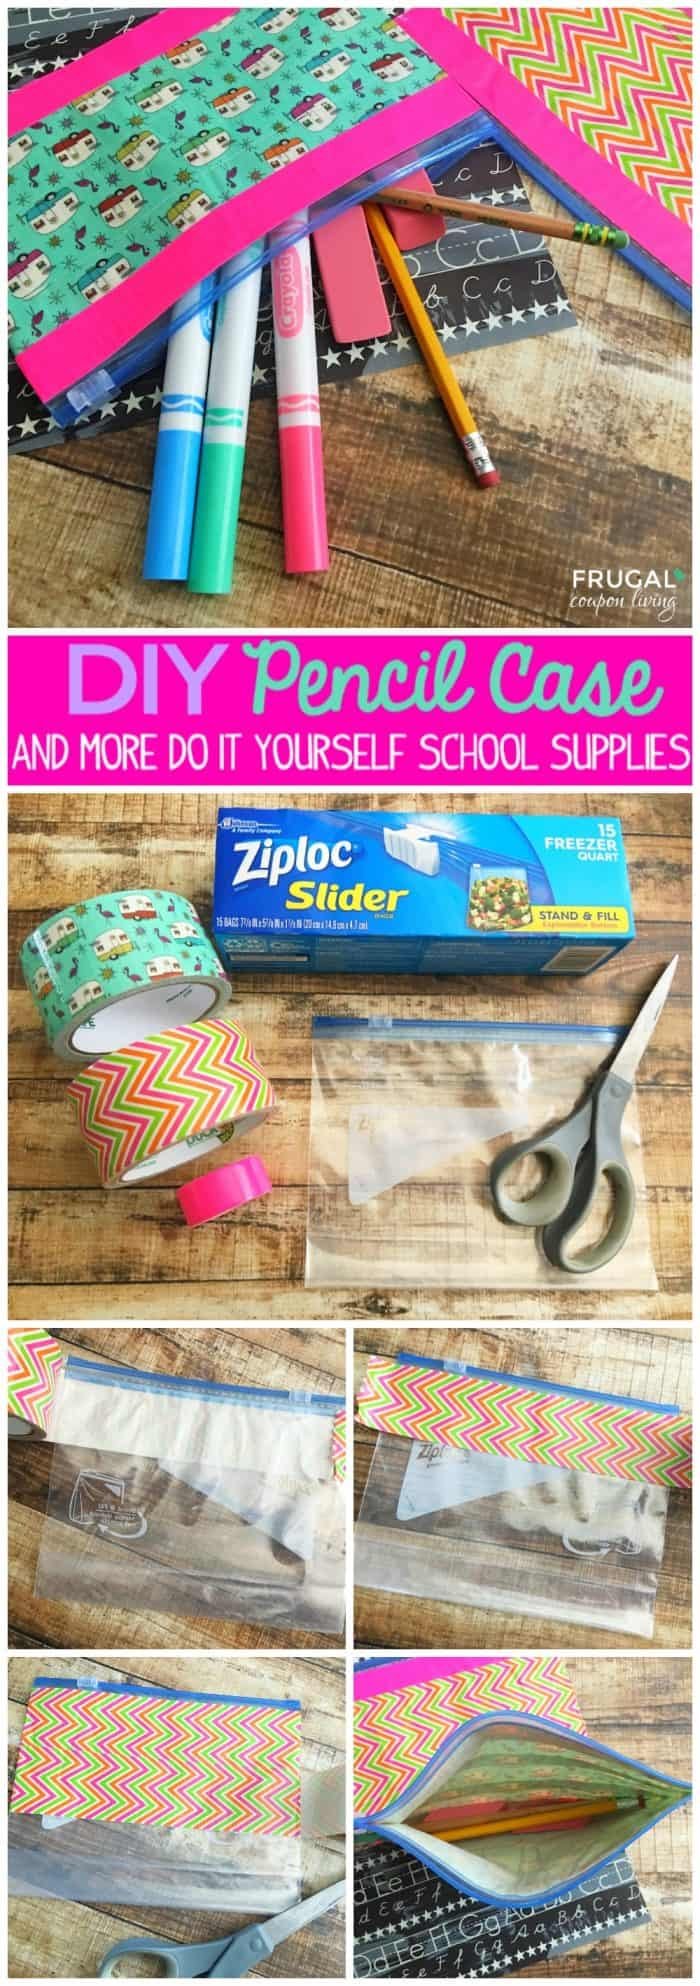 diy-pencil-case-ziploc-large-collage-frugal-coupon-living